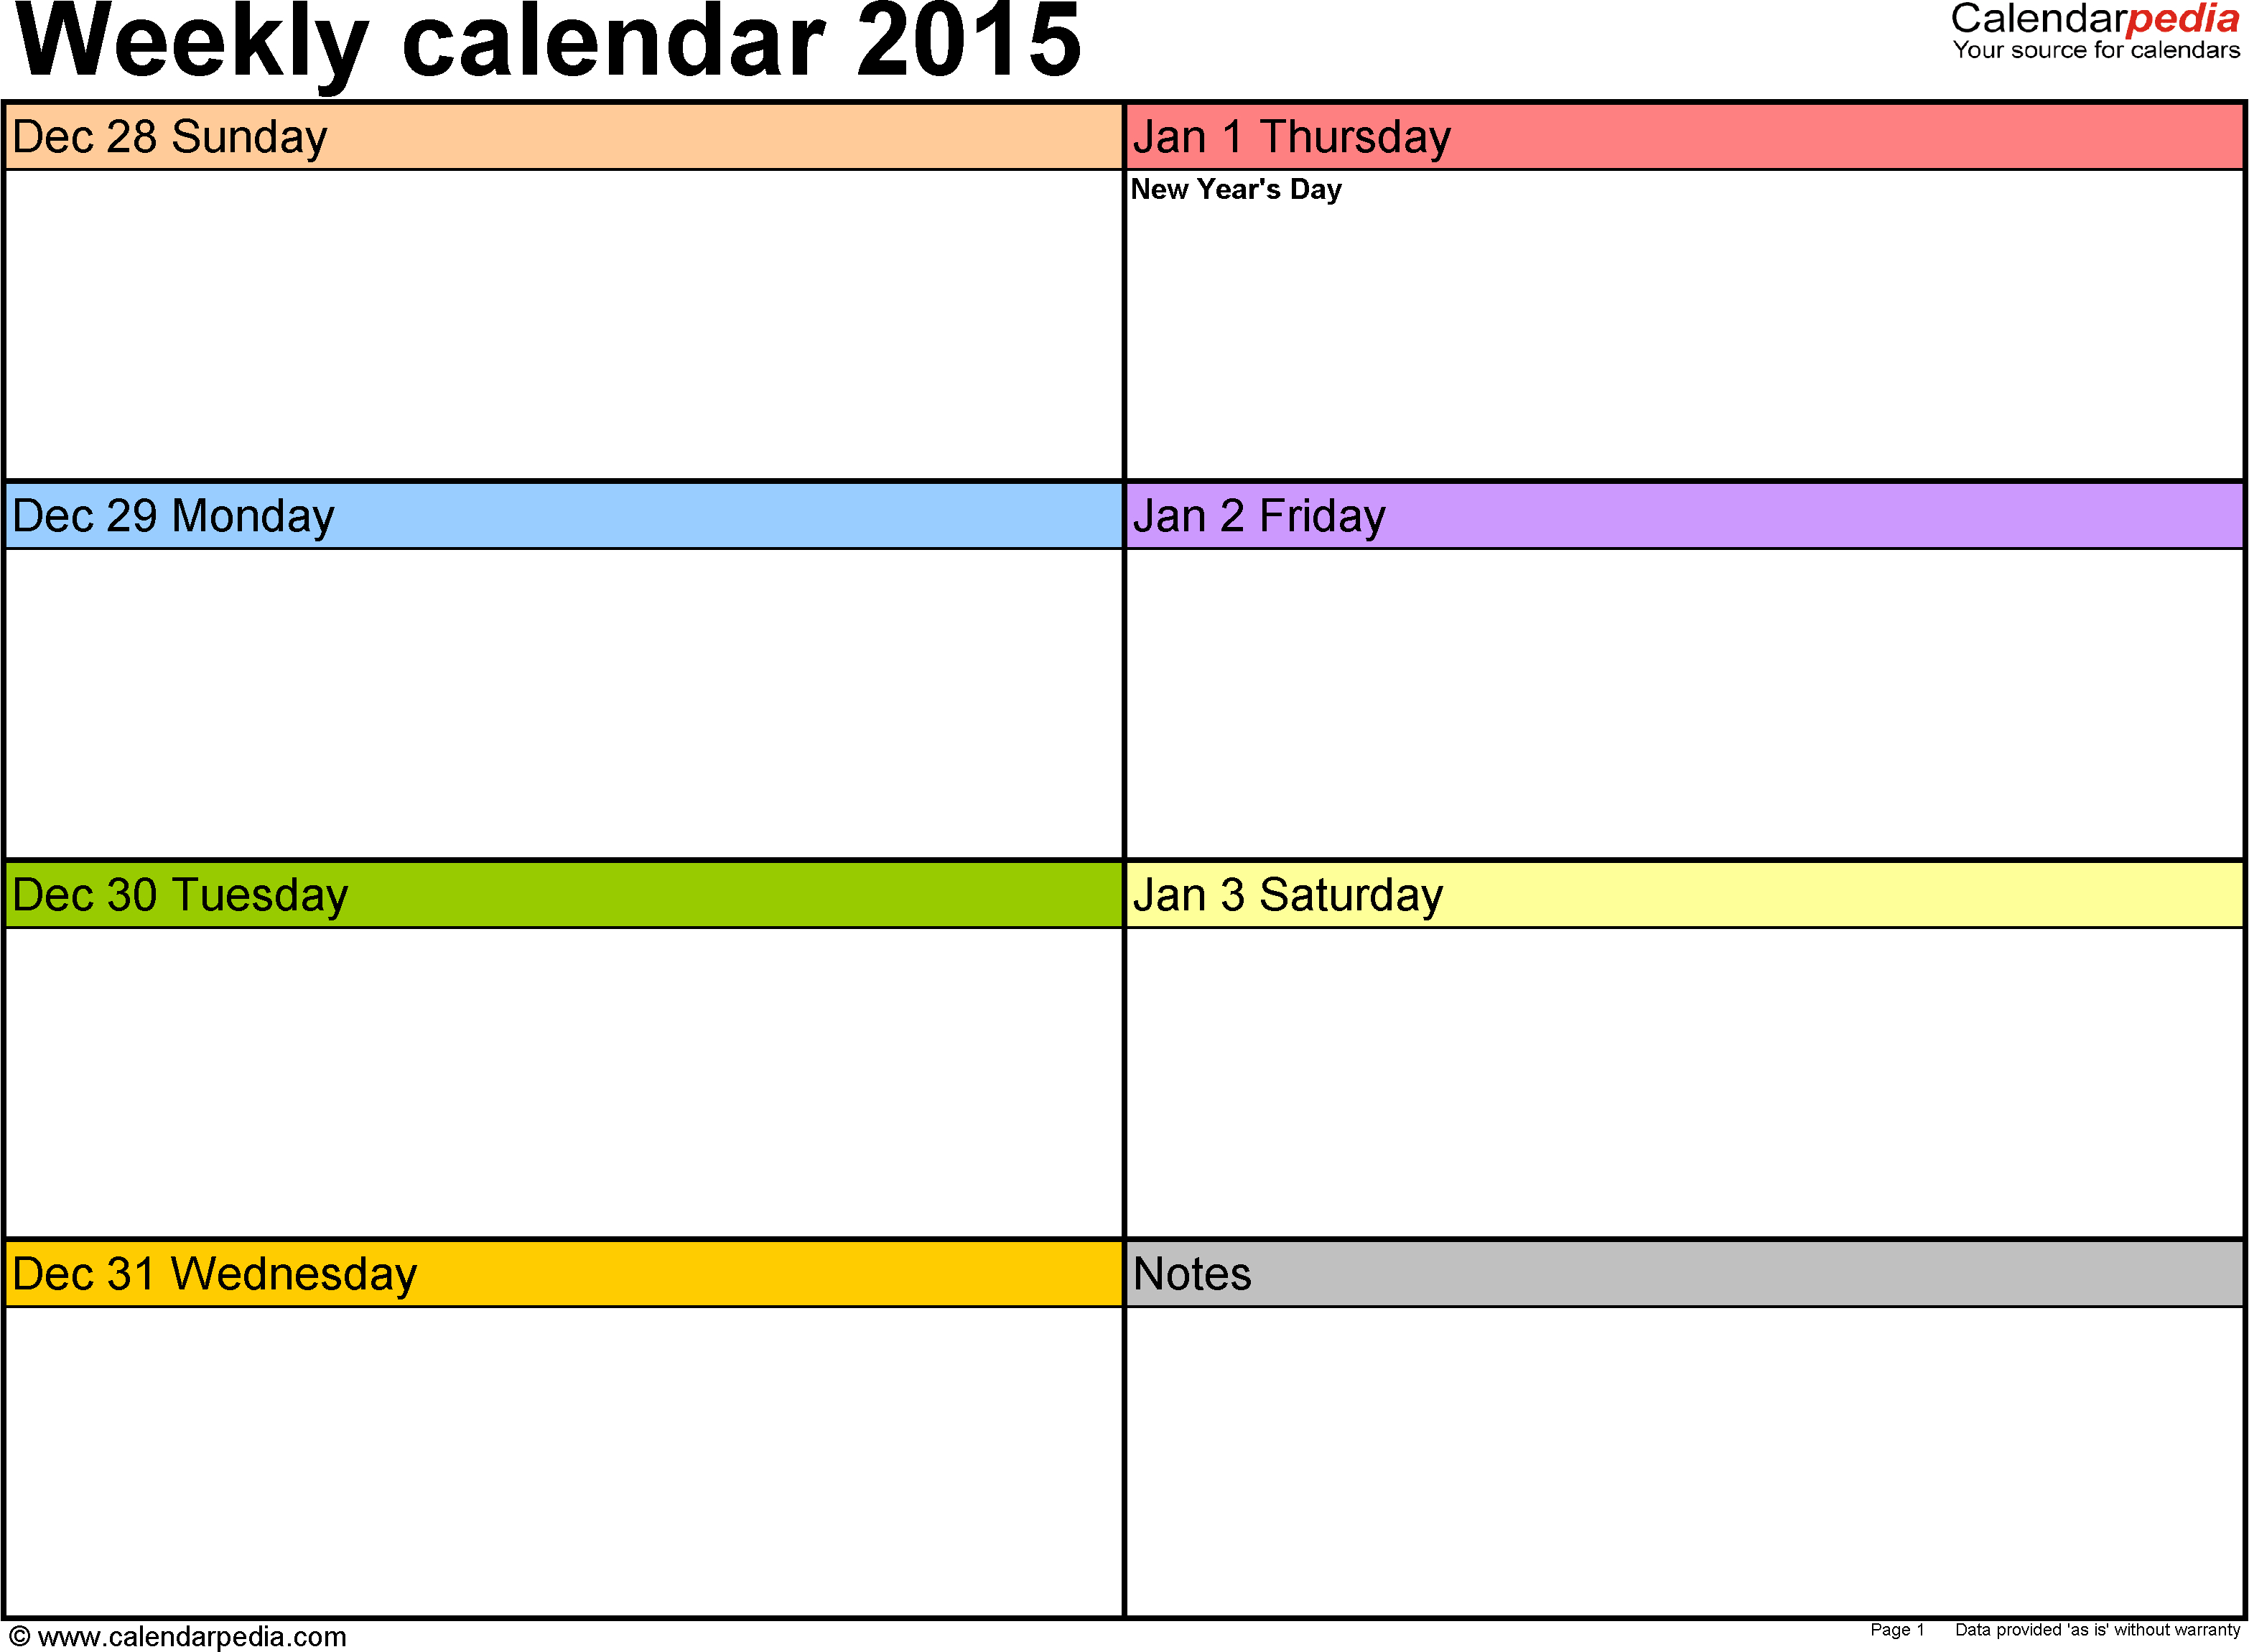 Weekly Calendar 2015 For Pdf - 12 Free Printable Templates within Free 7 Day Work Schedule Template Pdf